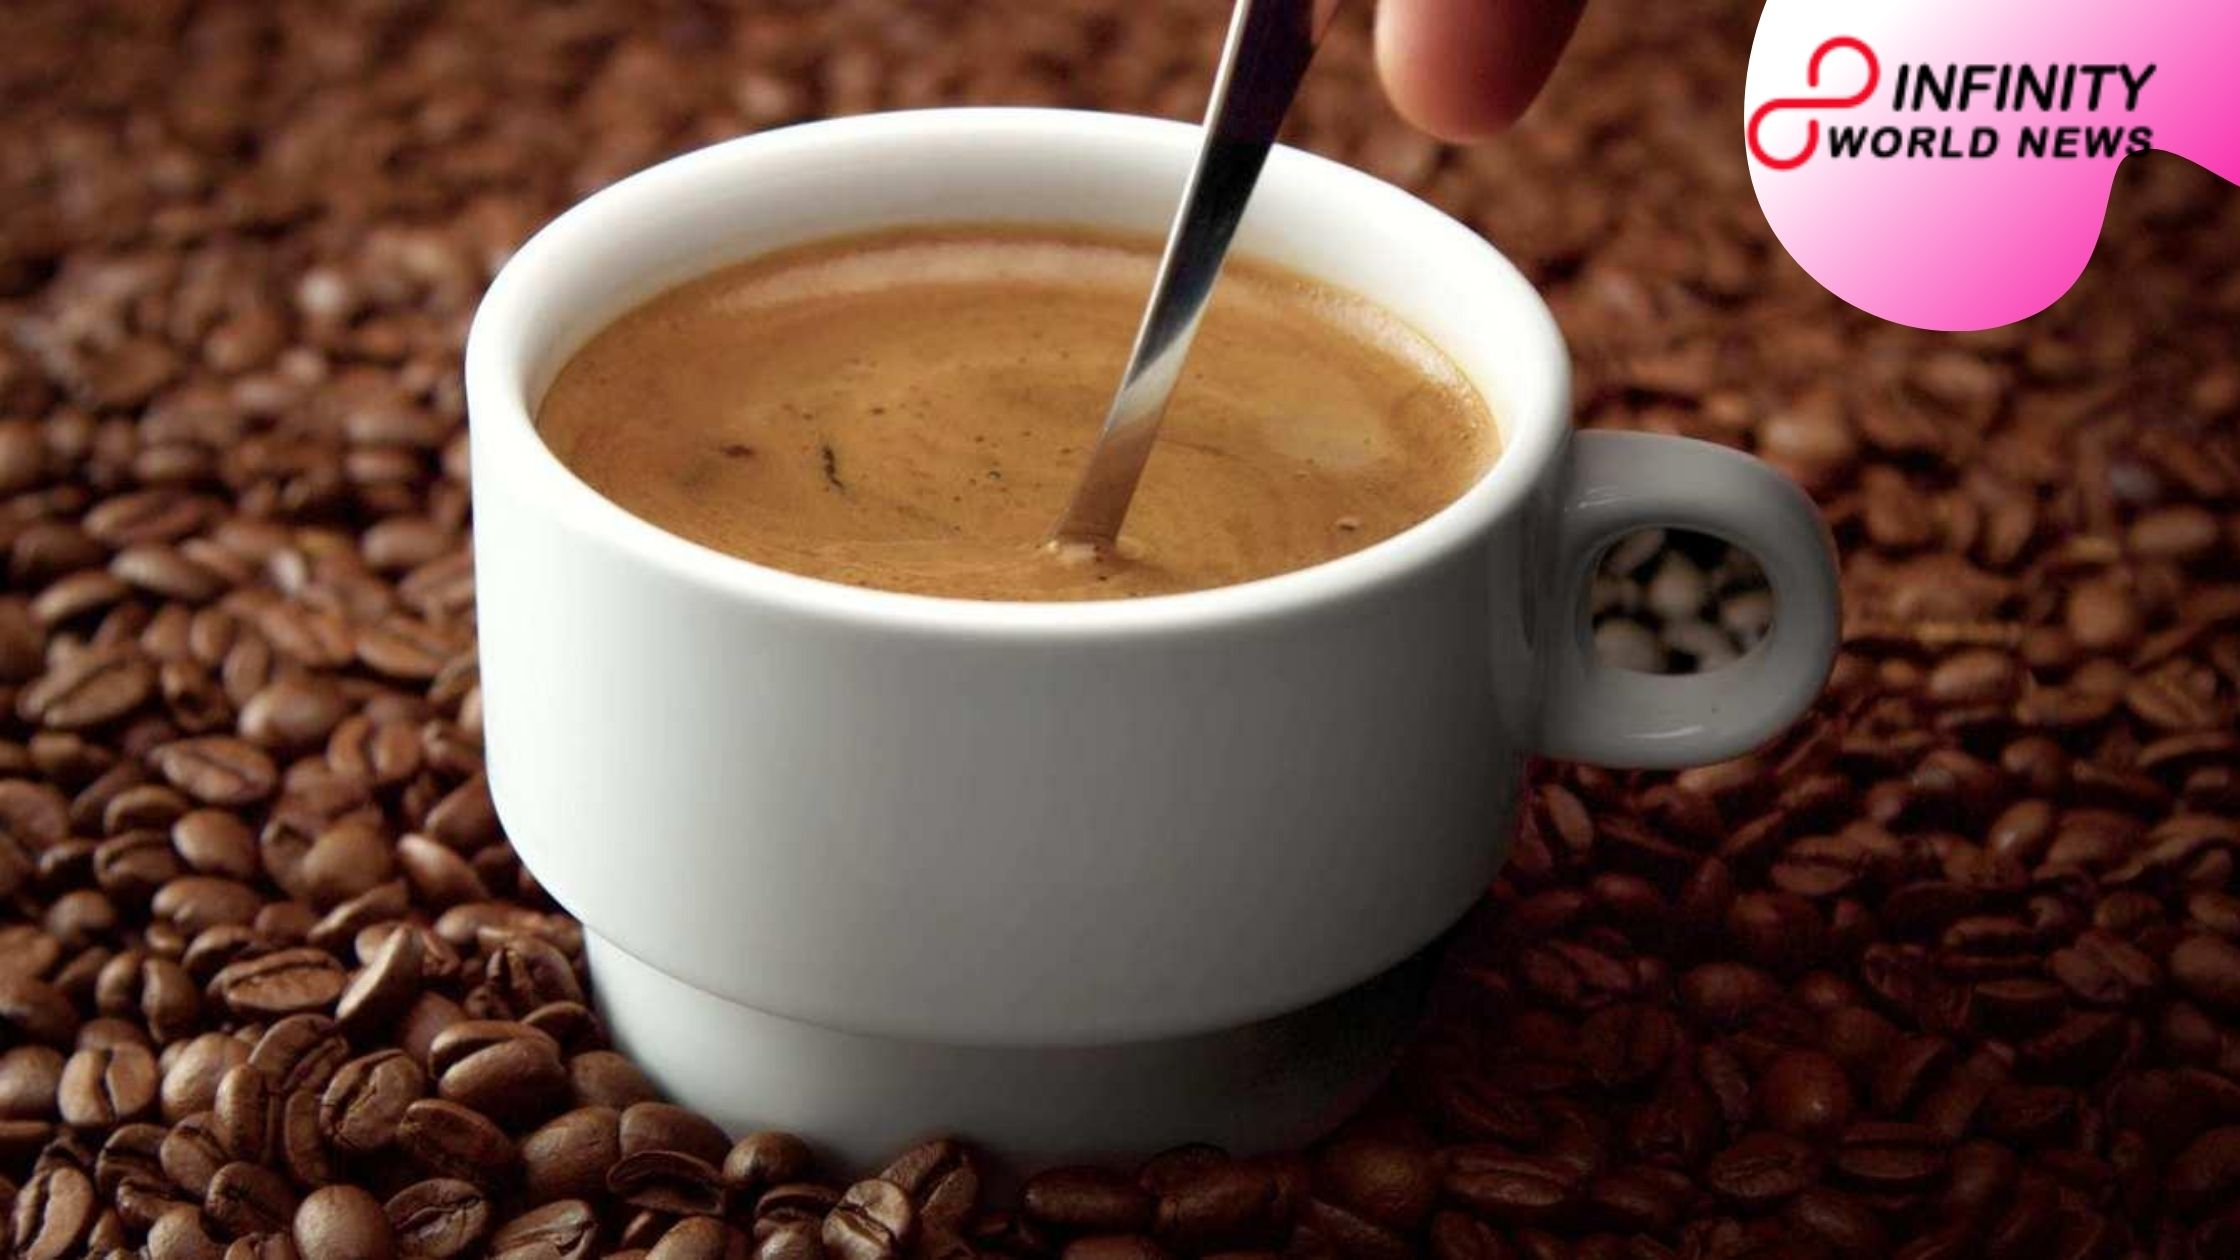 Feeling languid during night shifts at work_ Take a 'caffeine-snooze' to remain sharp